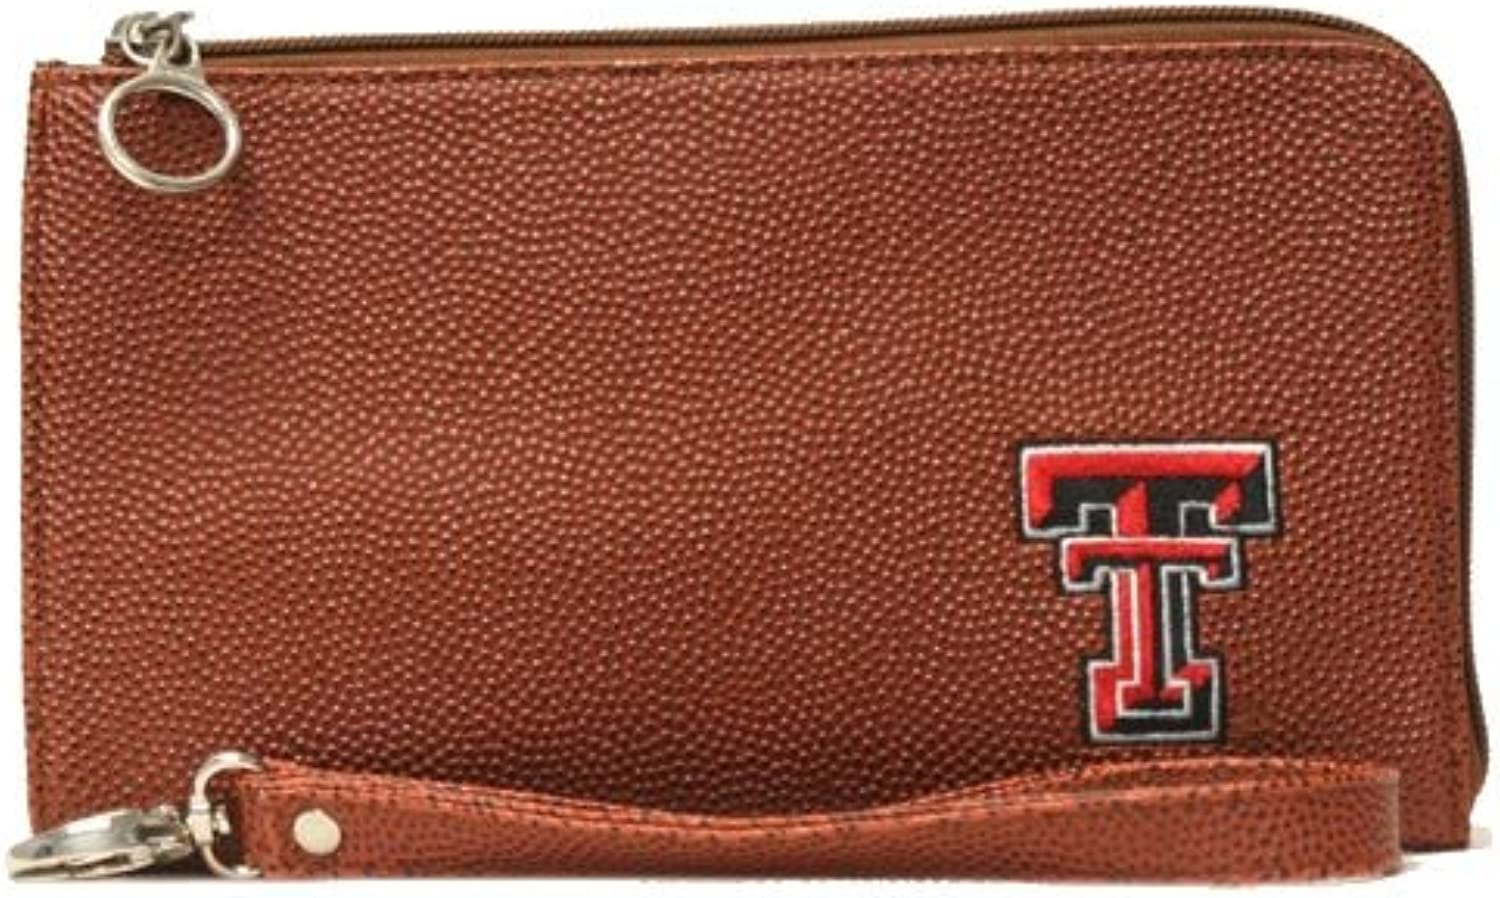 79f9673f Tech Red Raiders Clutch Bag Football Texas neusxa2305-Sporting goods ...